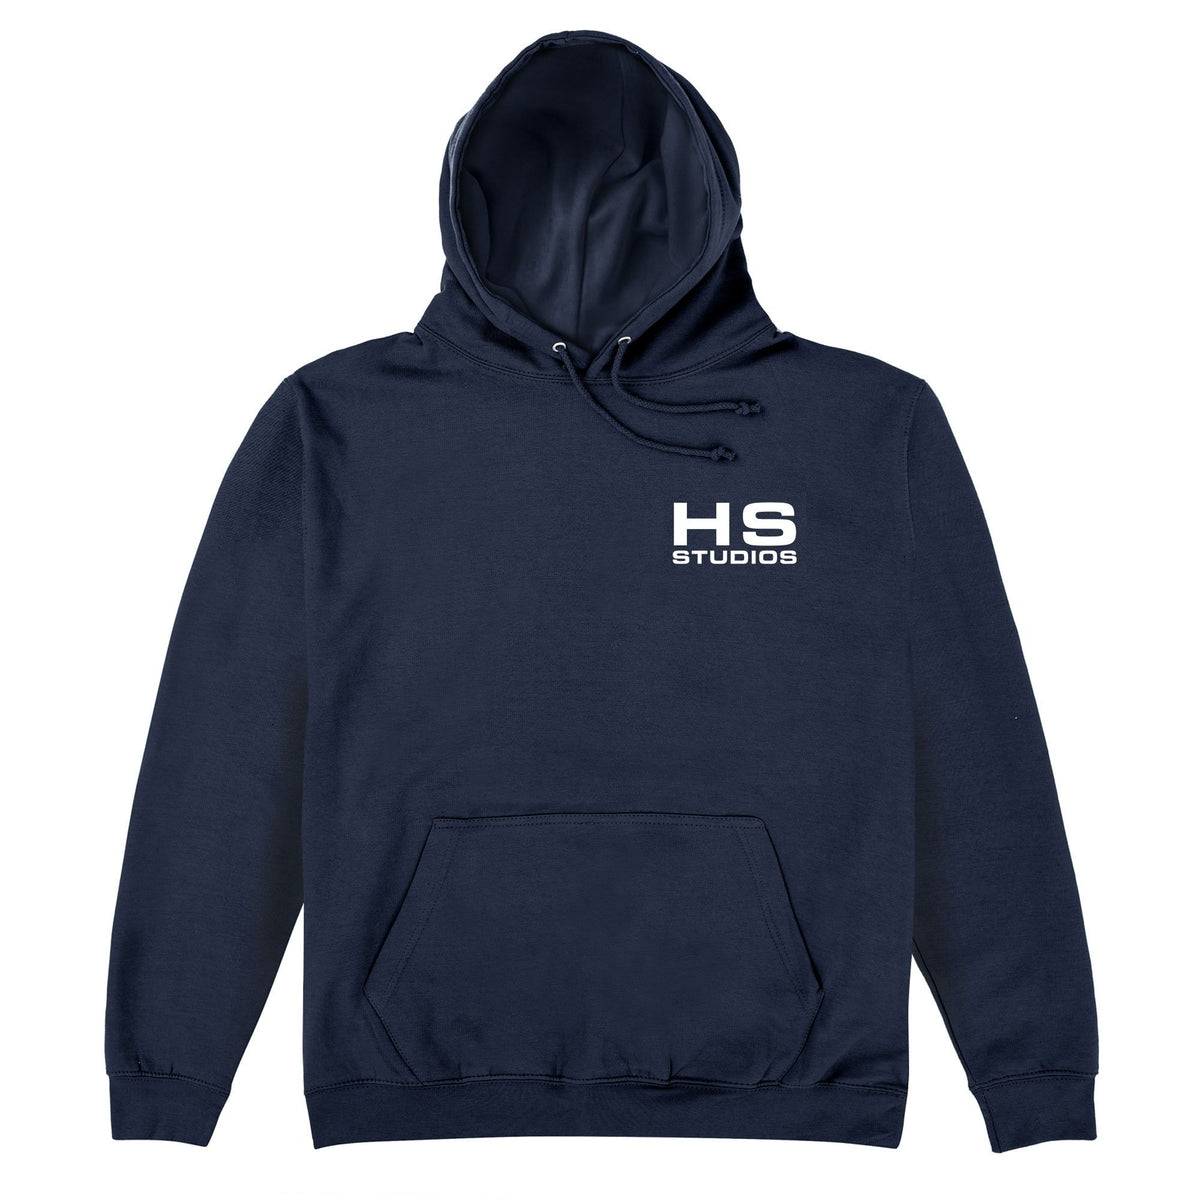 Harlington-Straker Studios Logo Hoodie - The Gerry Anderson Store